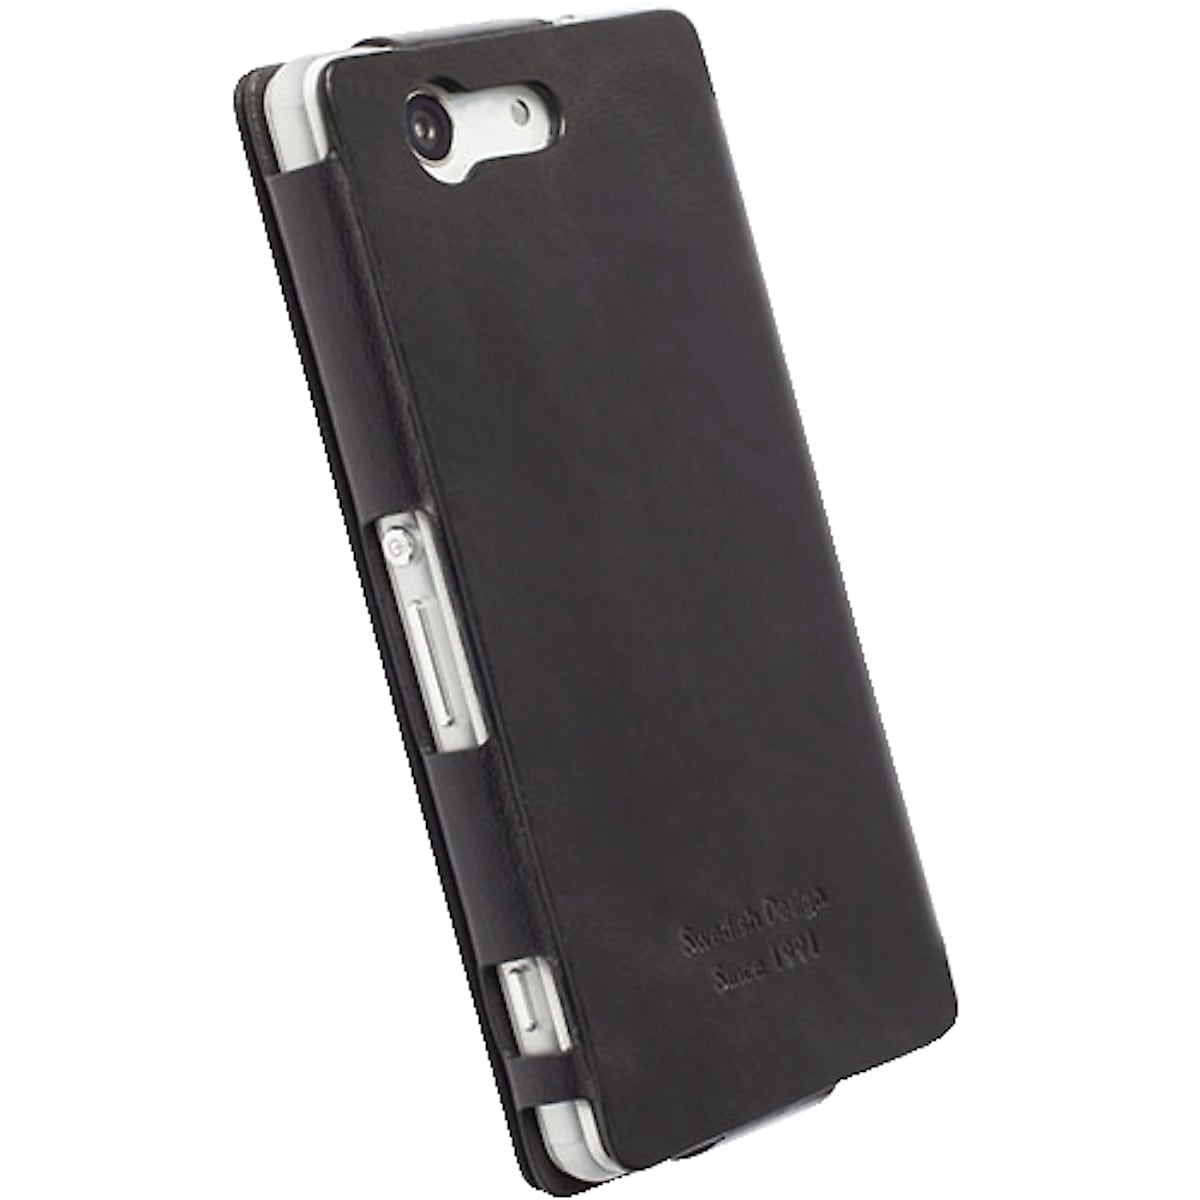 Krusell Kiruna futteral for Sony Xperia Z3 Compact